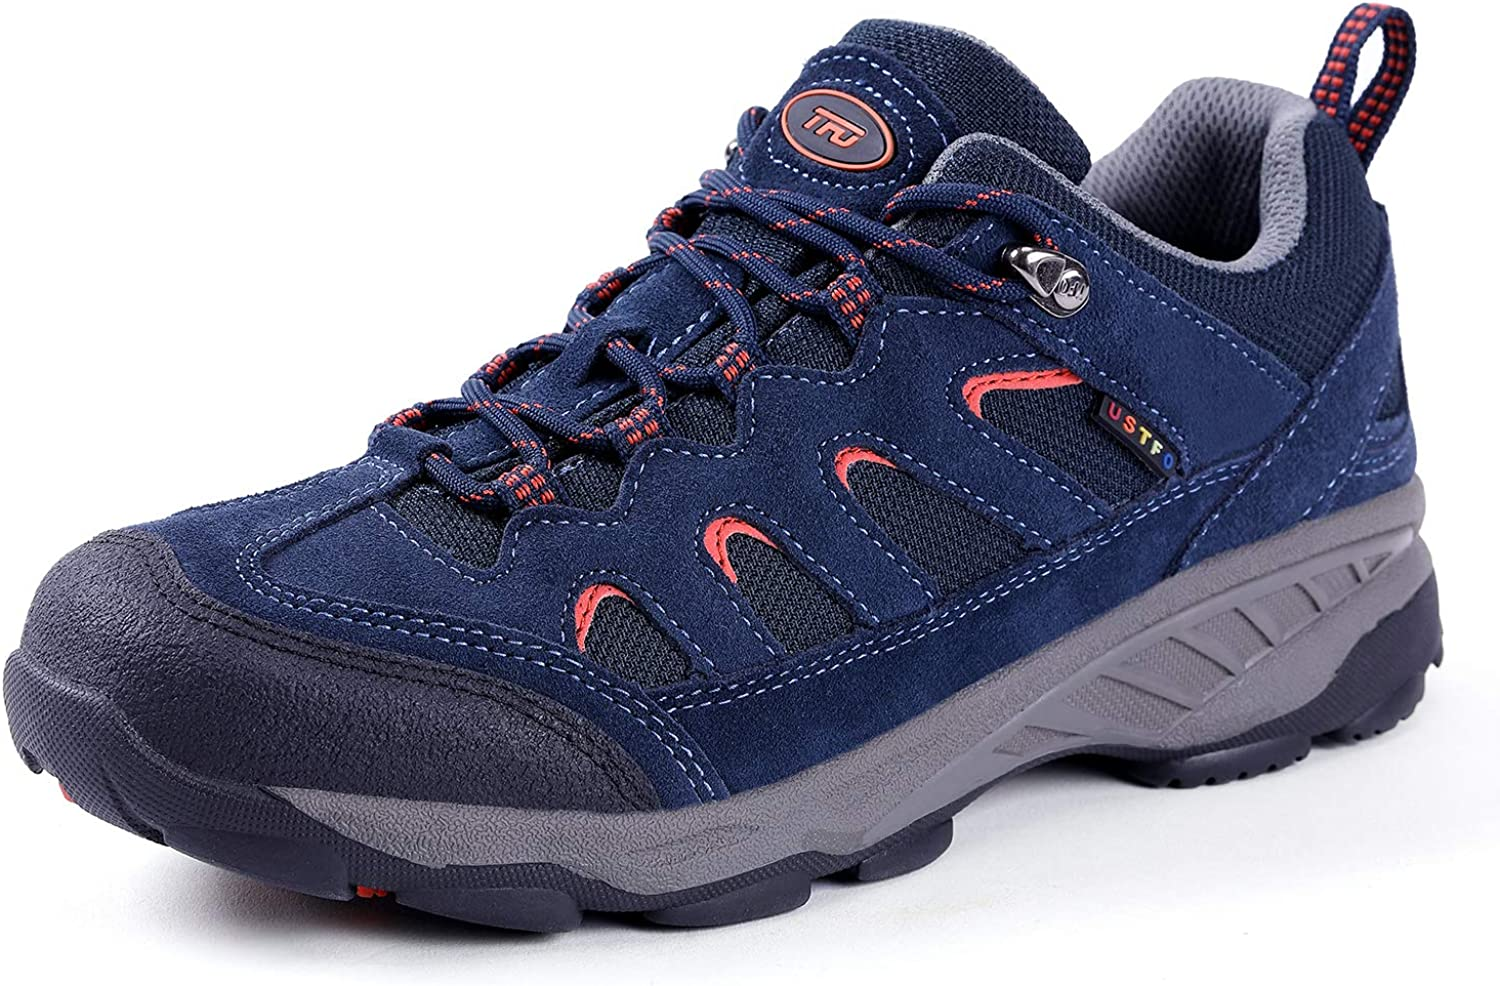 TFO Men's Outdoor Hiking Shoe Non-Slip Breathable Backpacking Camping Running Athletic Trekking Shoe